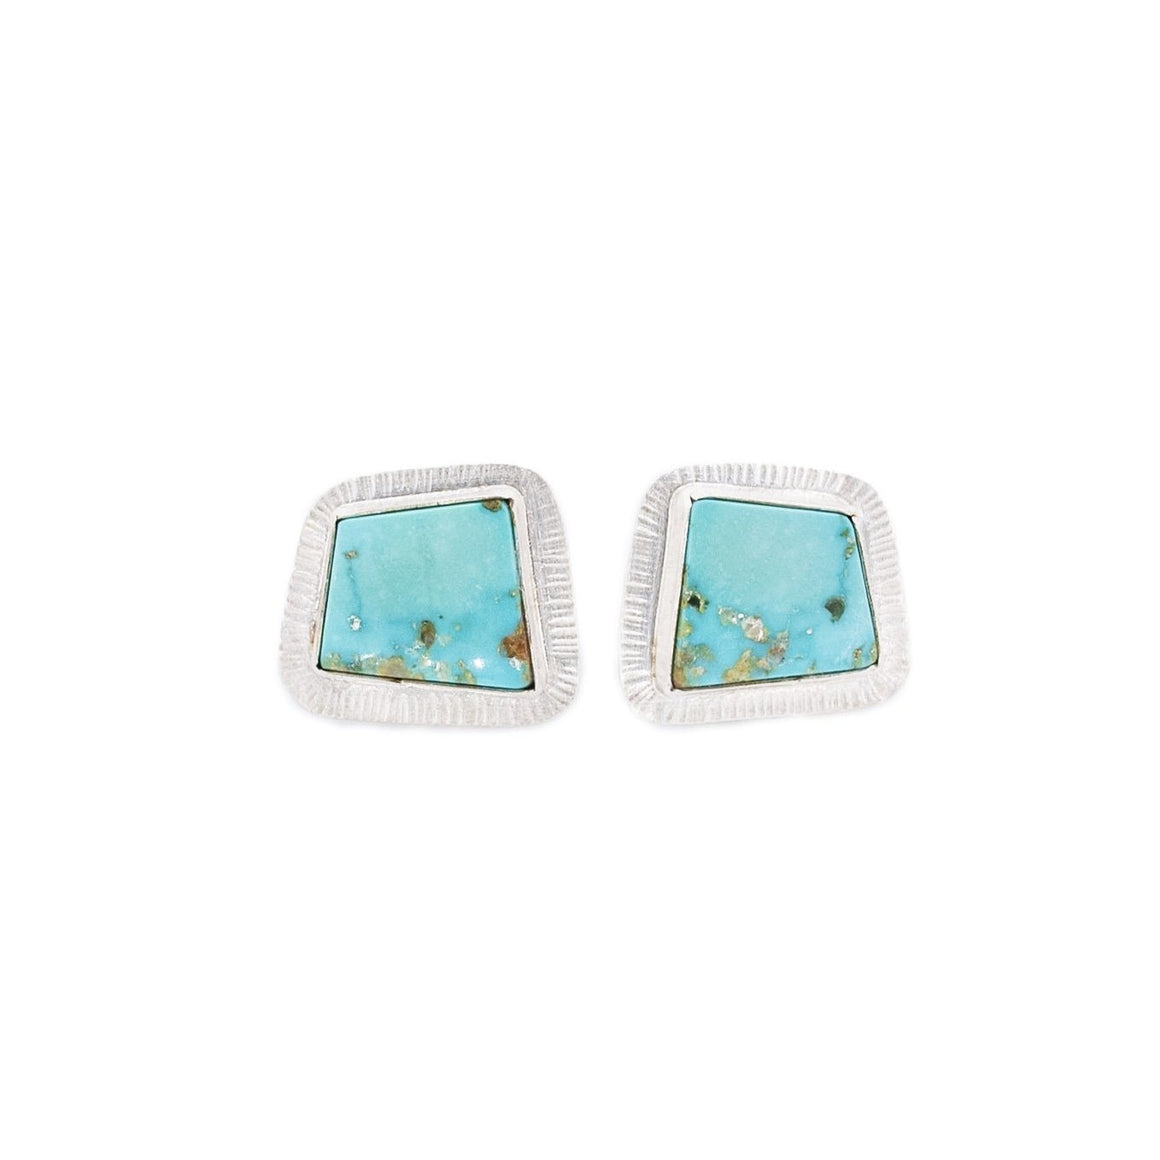 Turquoise and Silver Cuff Links by Original Sin Jewerly